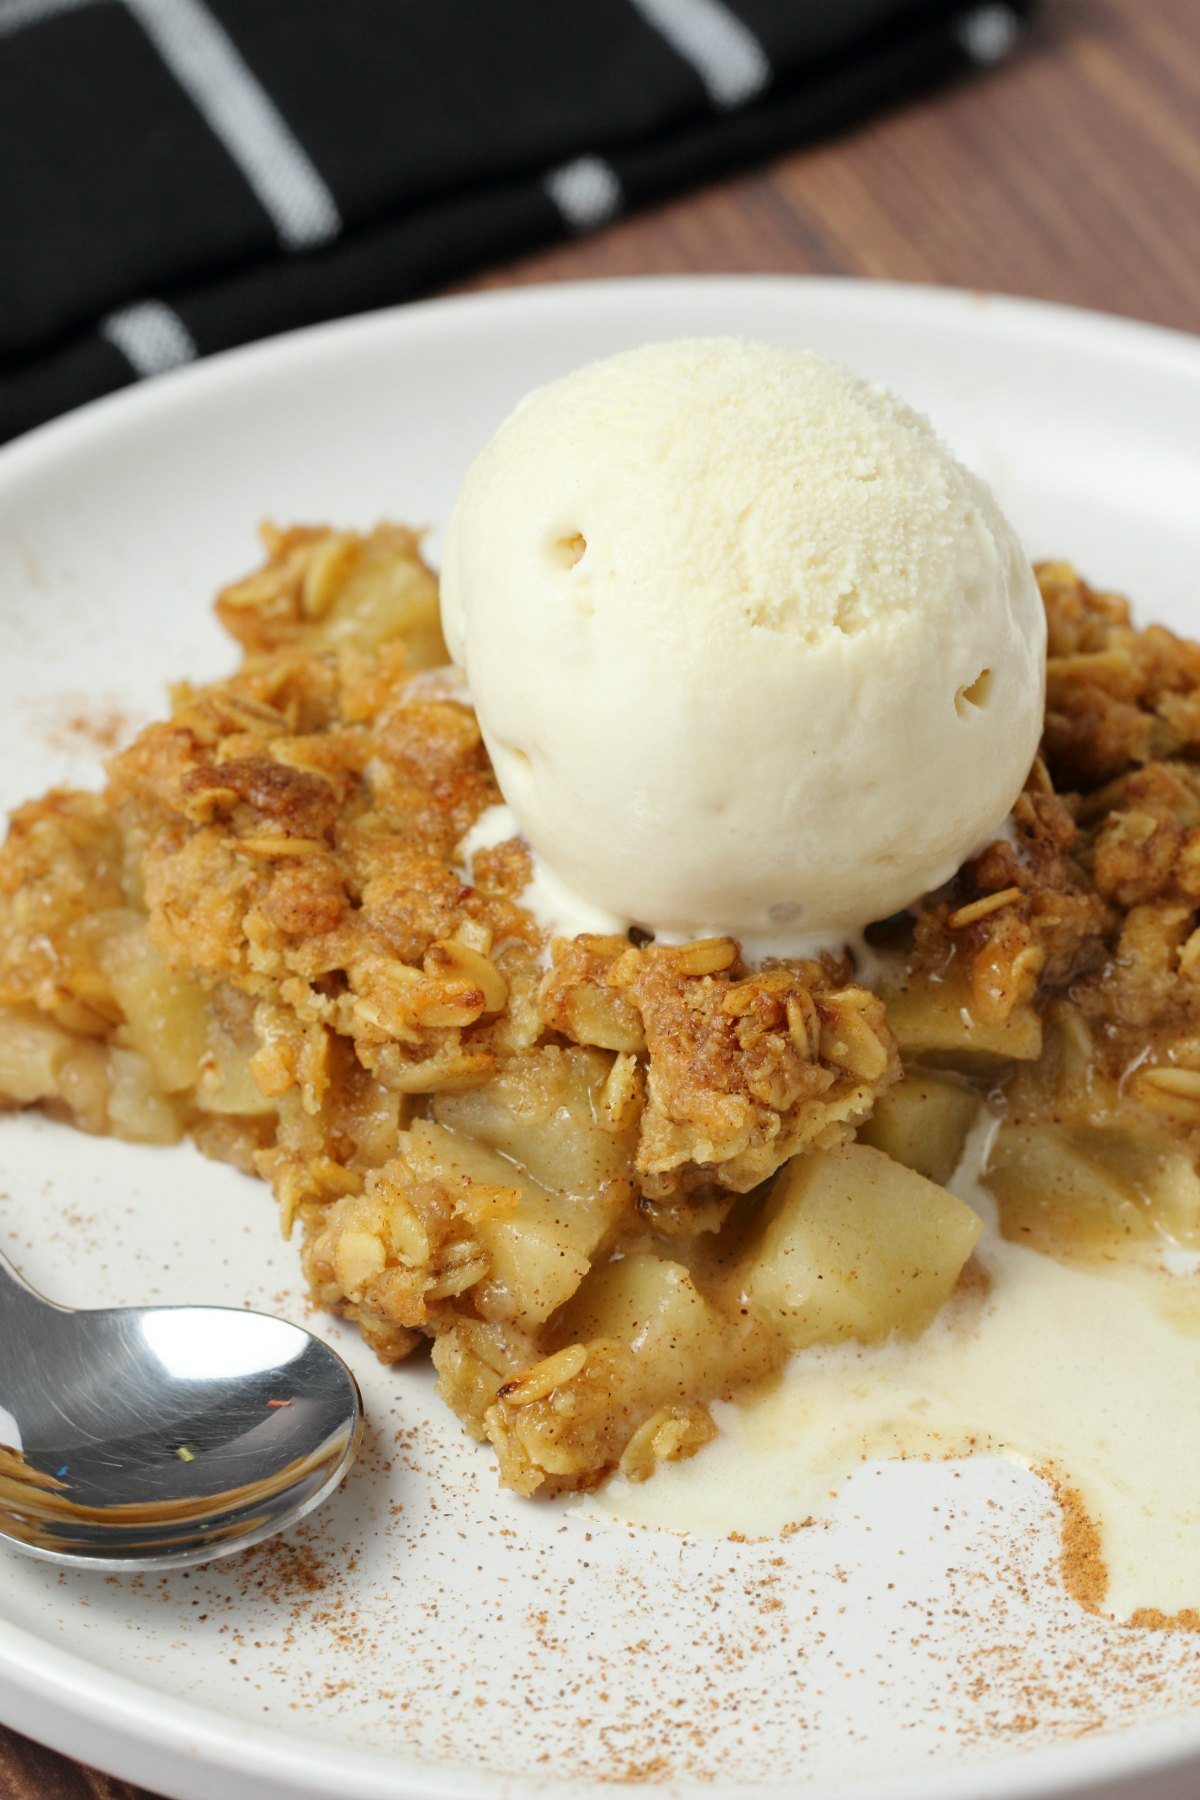 A slice of vegan apple crisp with a scoop of vegan vanilla ice cream on top on a white plate.